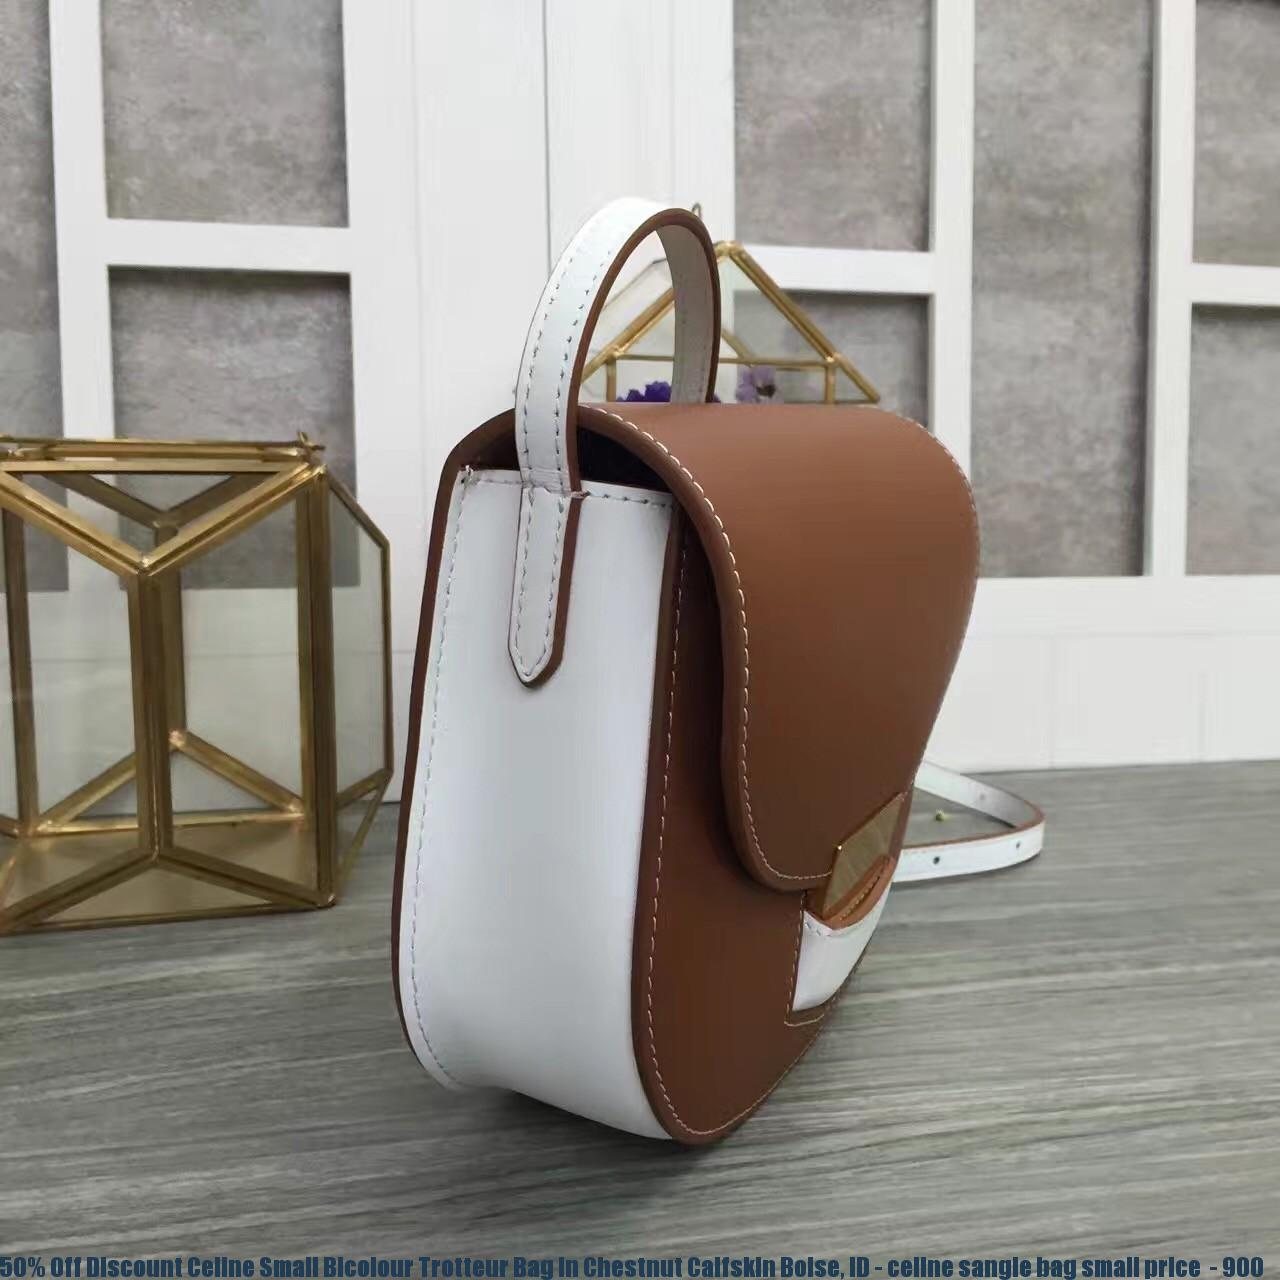 cee3045654 50% Off Discount Celine Small Bicolour Trotteur Bag In Chestnut ...